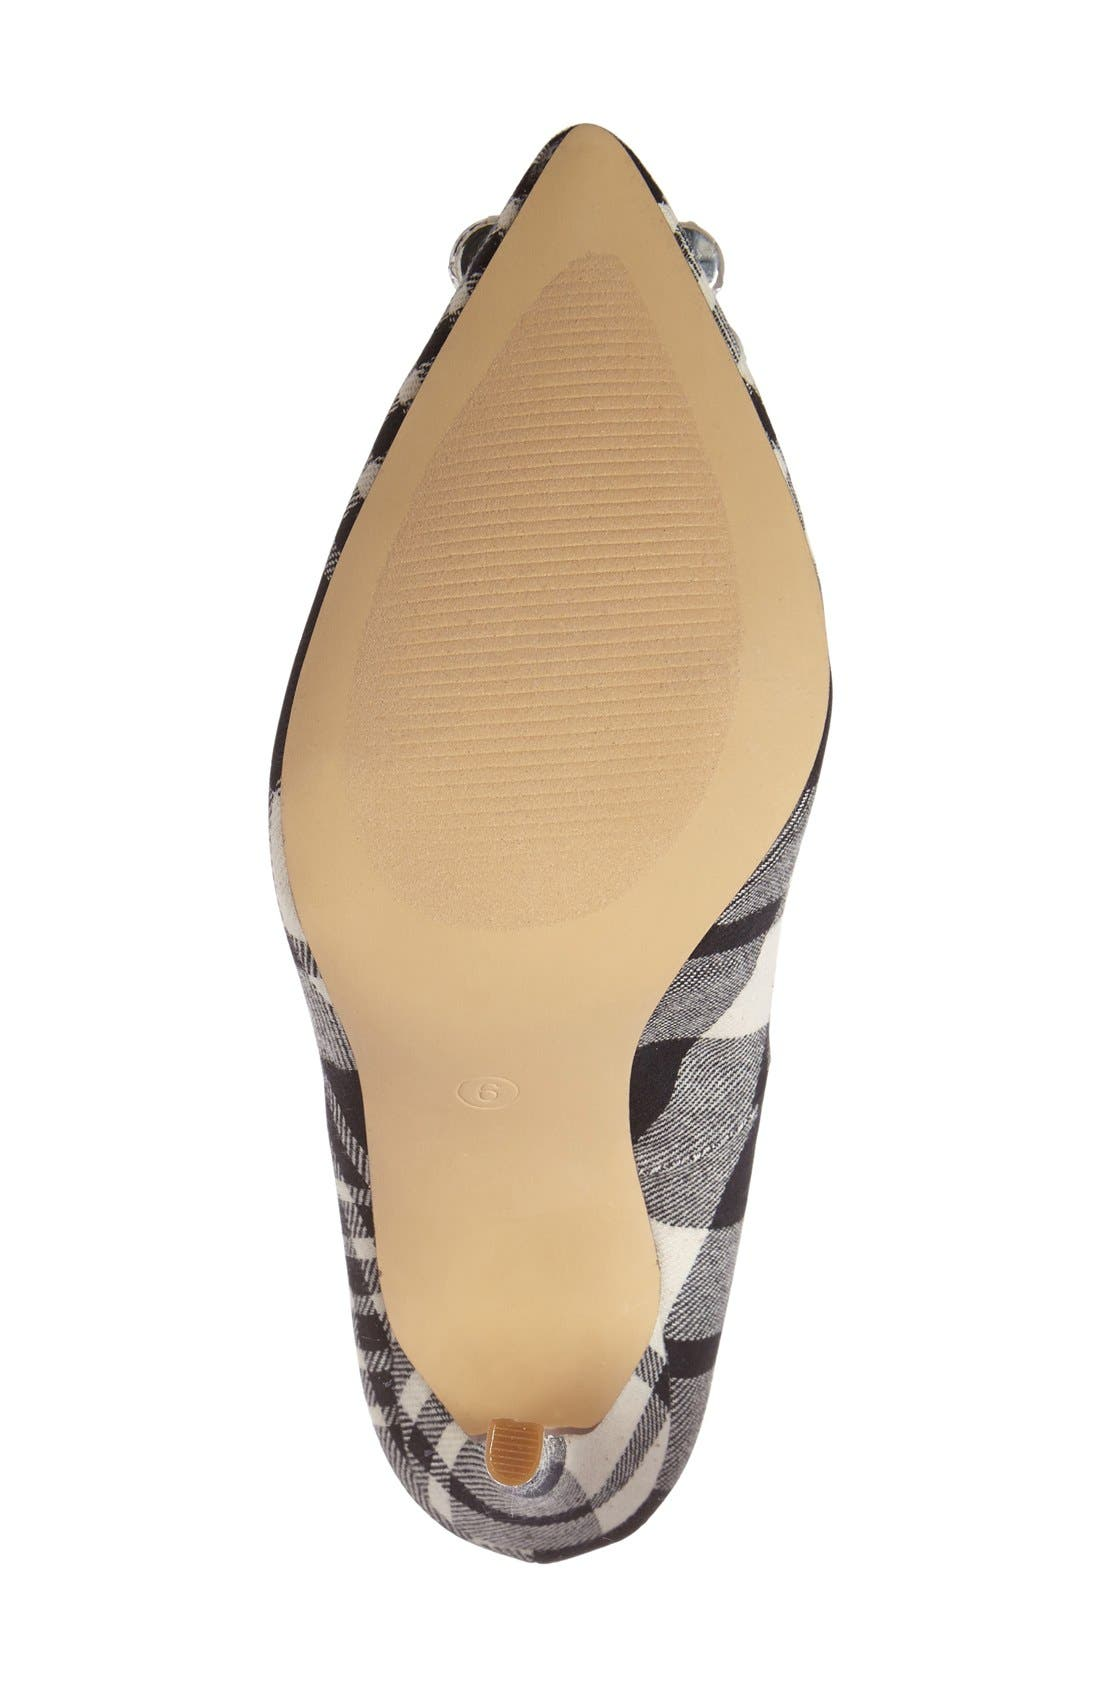 Crystal Pointy Toe Pump,                             Alternate thumbnail 4, color,                             001